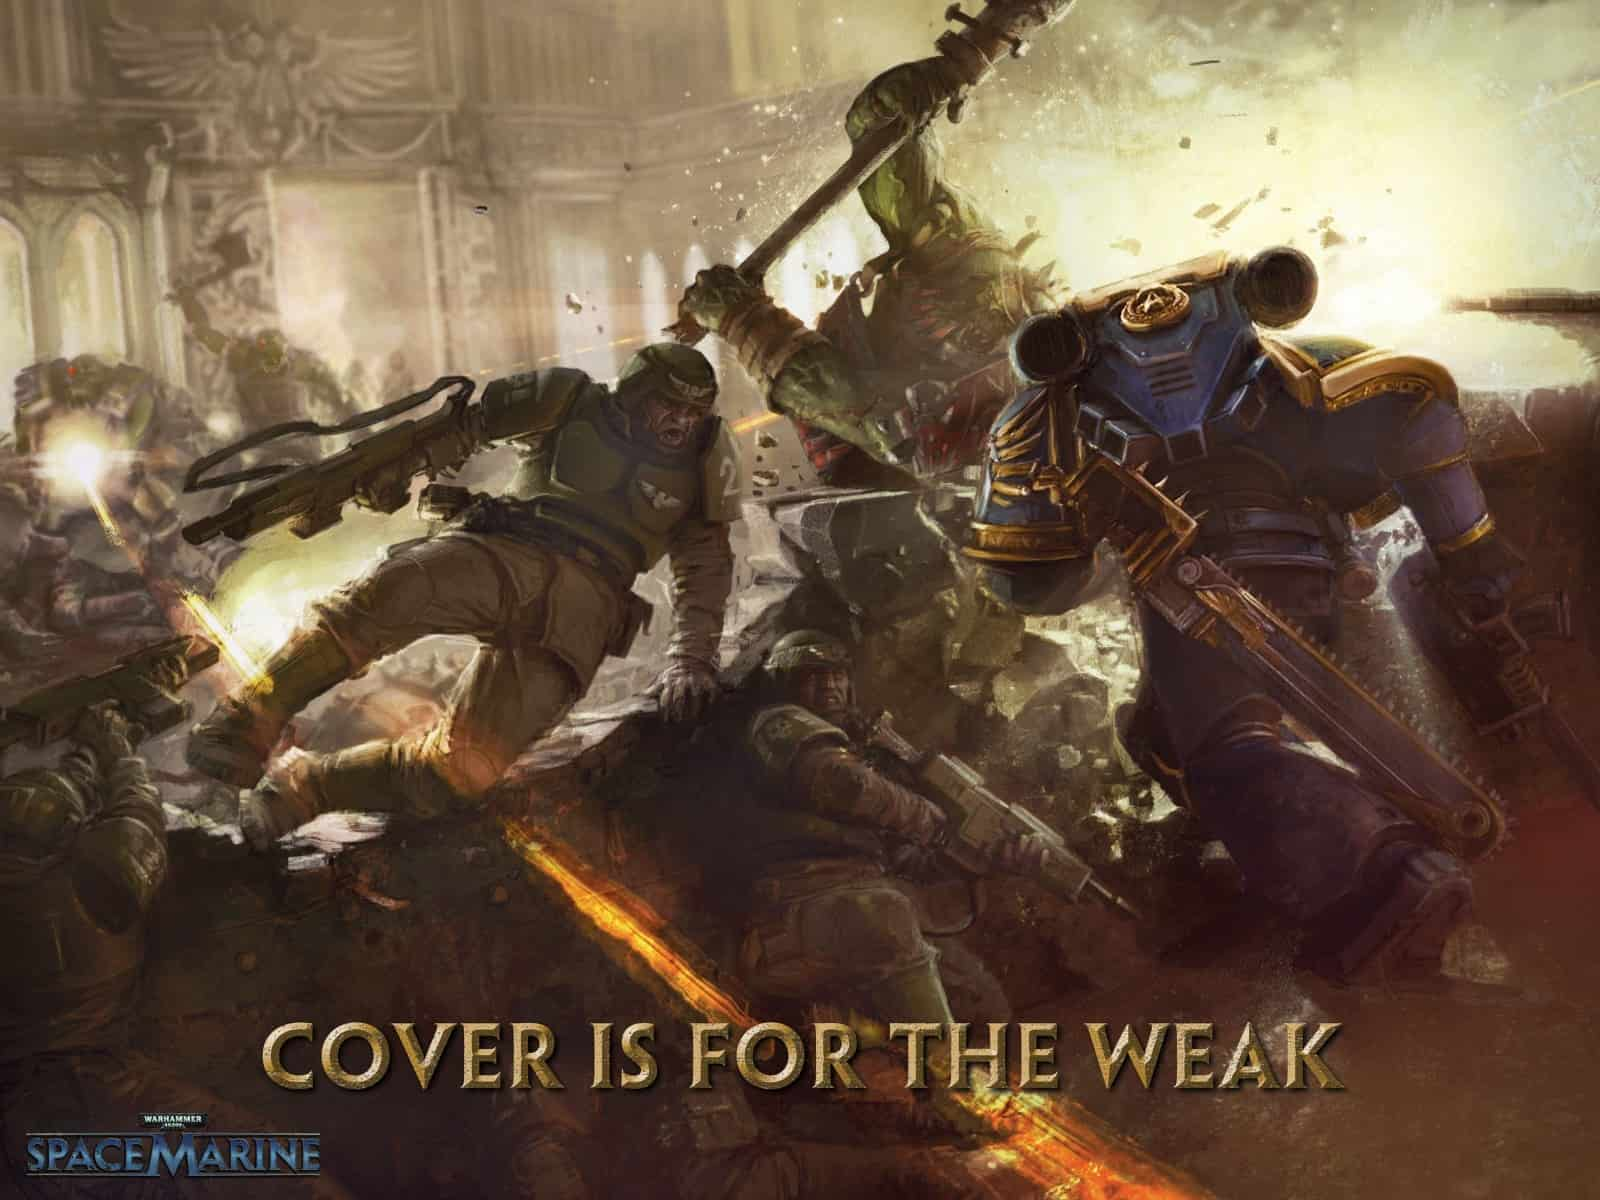 cover-is-for-the-weak_108119-1600x1200